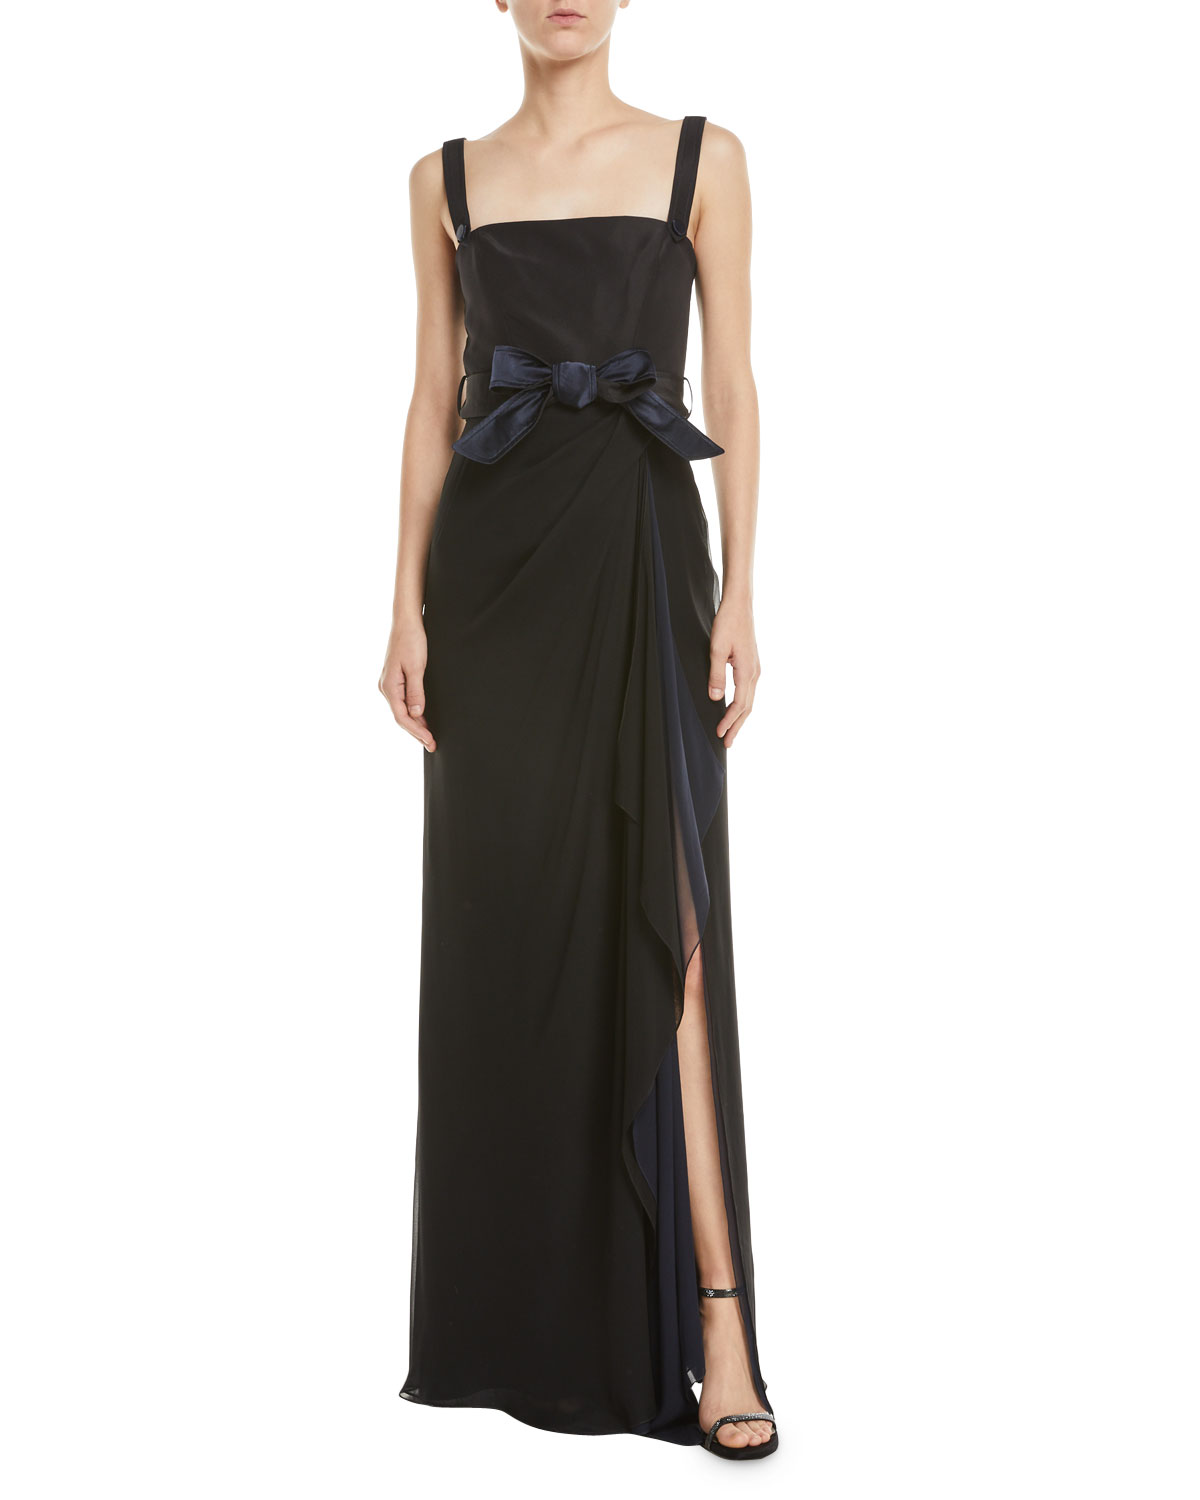 ATELIER CAITO FOR HERVE PIERRE Square-Neck Two-Tone Crepe Tie-Waist Gown in Black/Blue